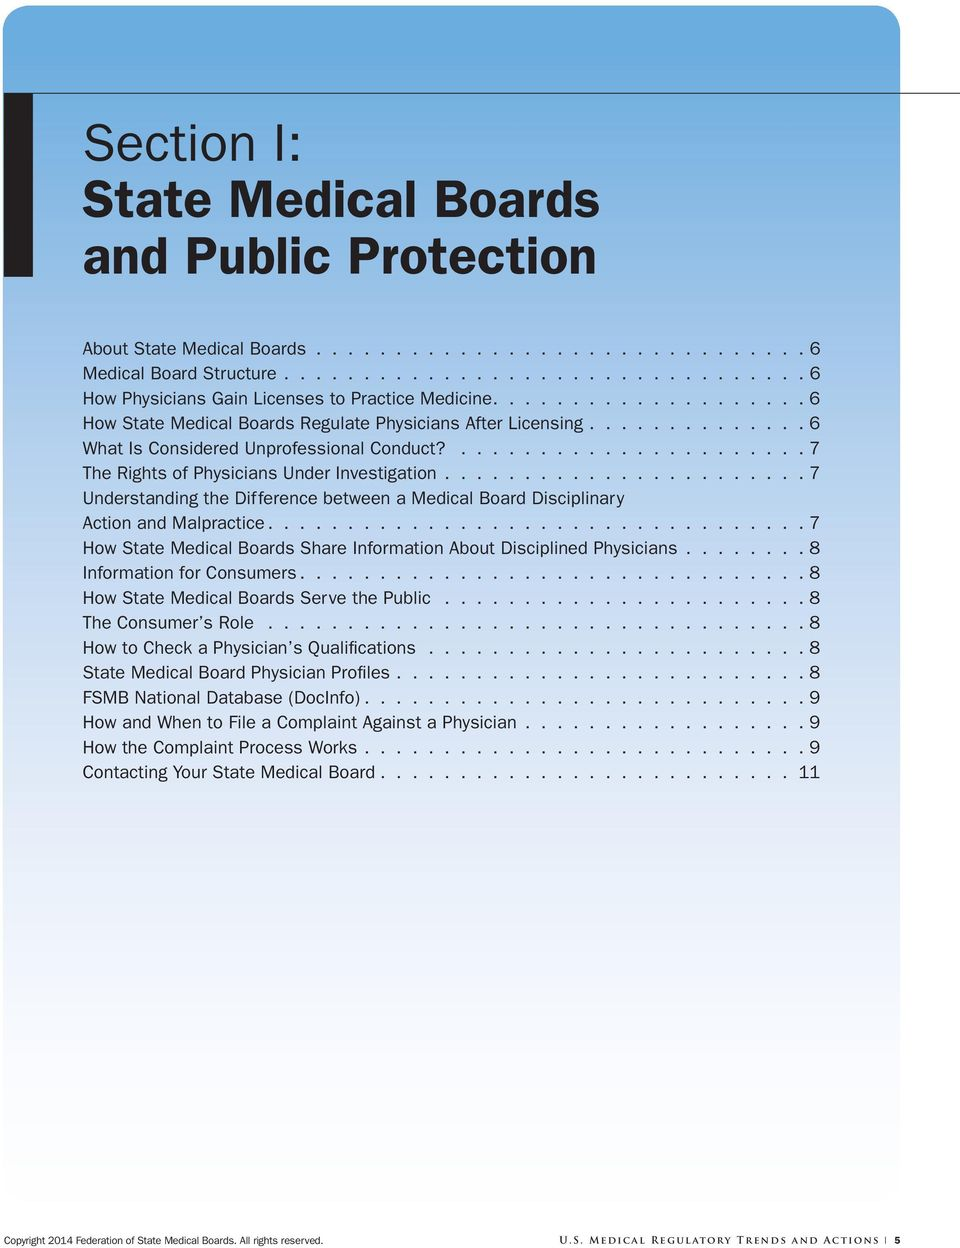 ...................... 7 Understanding the Difference between a Medical Board Disciplinary Action and Malpractice.................................. 7 How State Medical Boards Share Information About Disciplined Physicians.